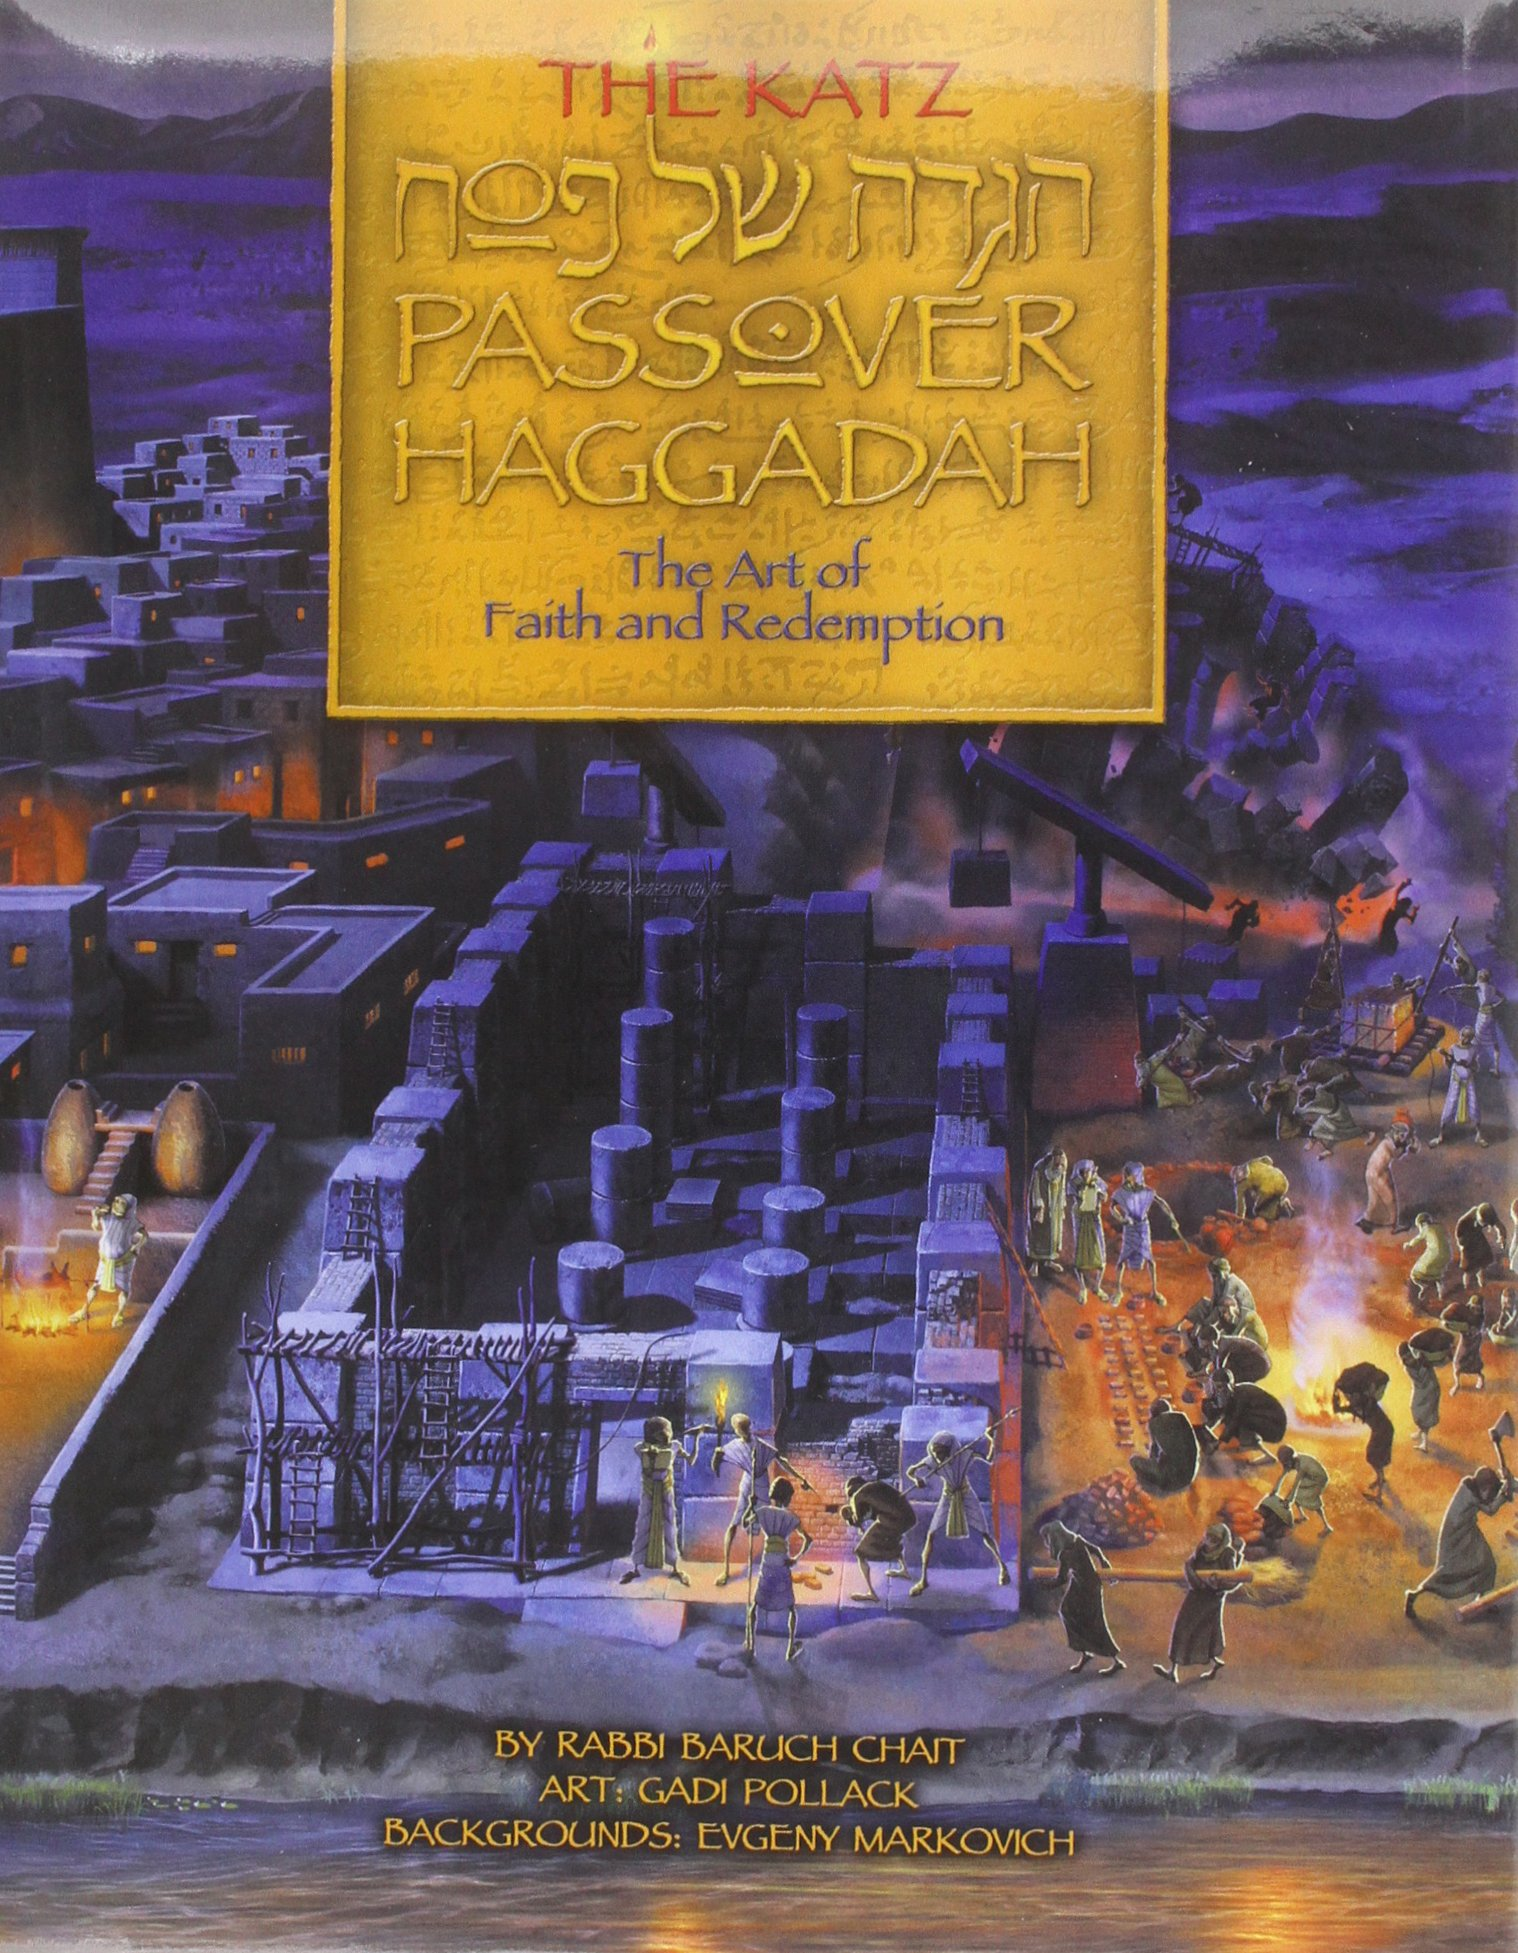 The Katz Passover Haggadah: The Art of Faith and Redemption: The Lobos Edition (Bilingual Edition) (Hebrew and English Edition) pdf epub